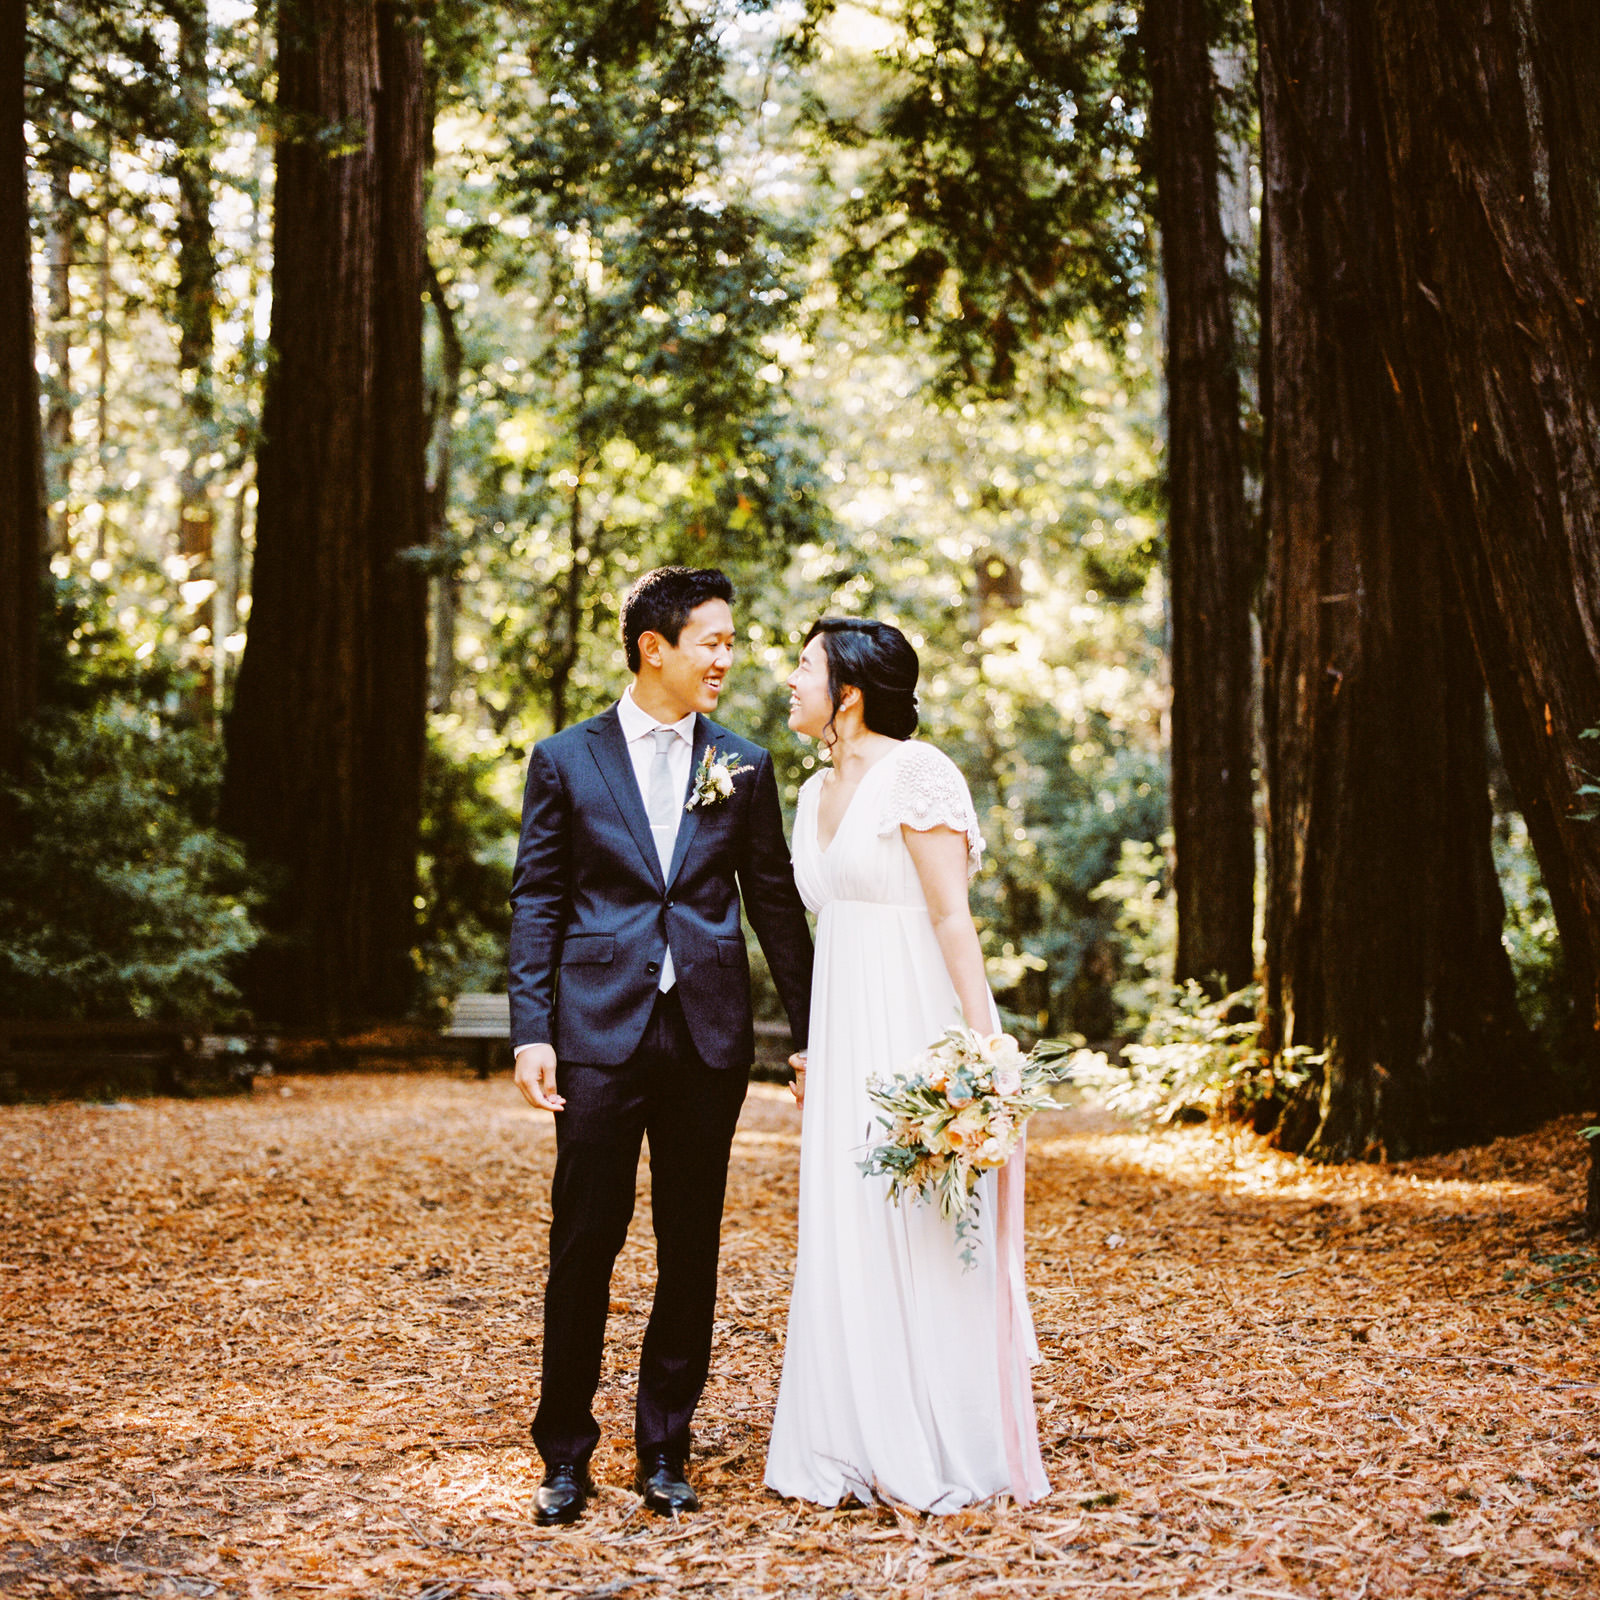 kimclay-blog-007 REDWOOD FOREST WEDDING